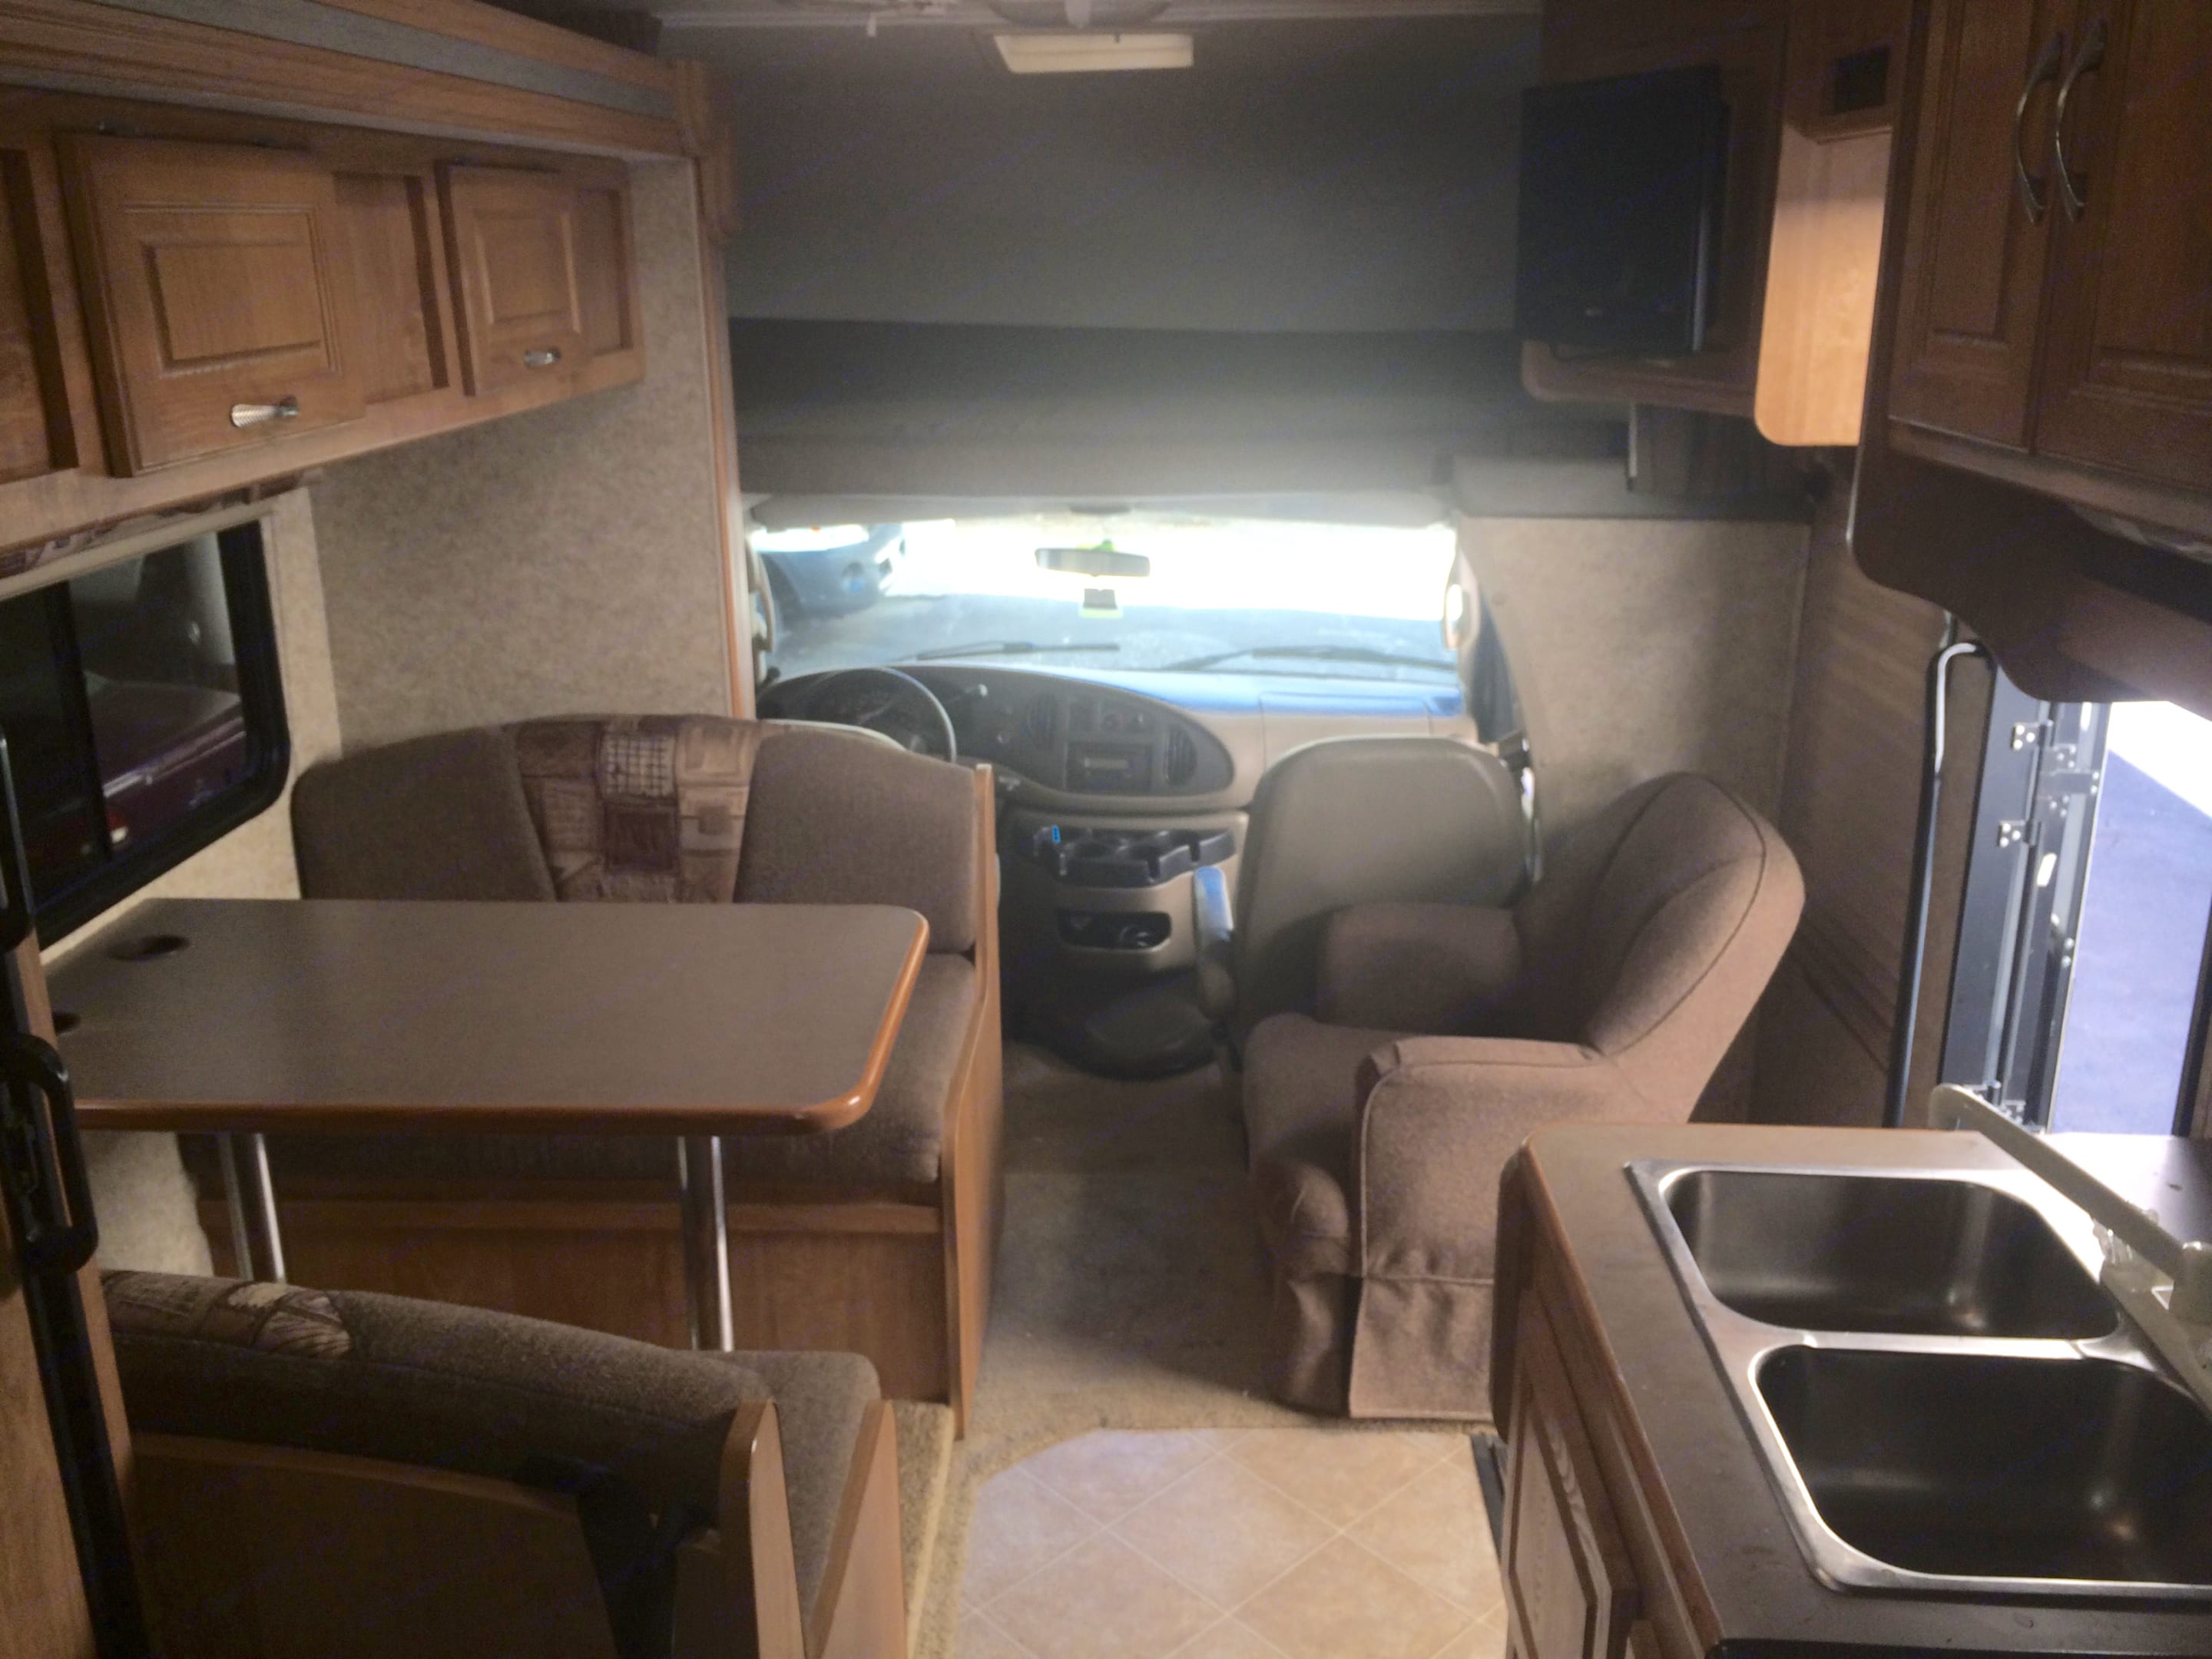 Plenty of space even with the slide closed.. Coachmen Freelander 2008